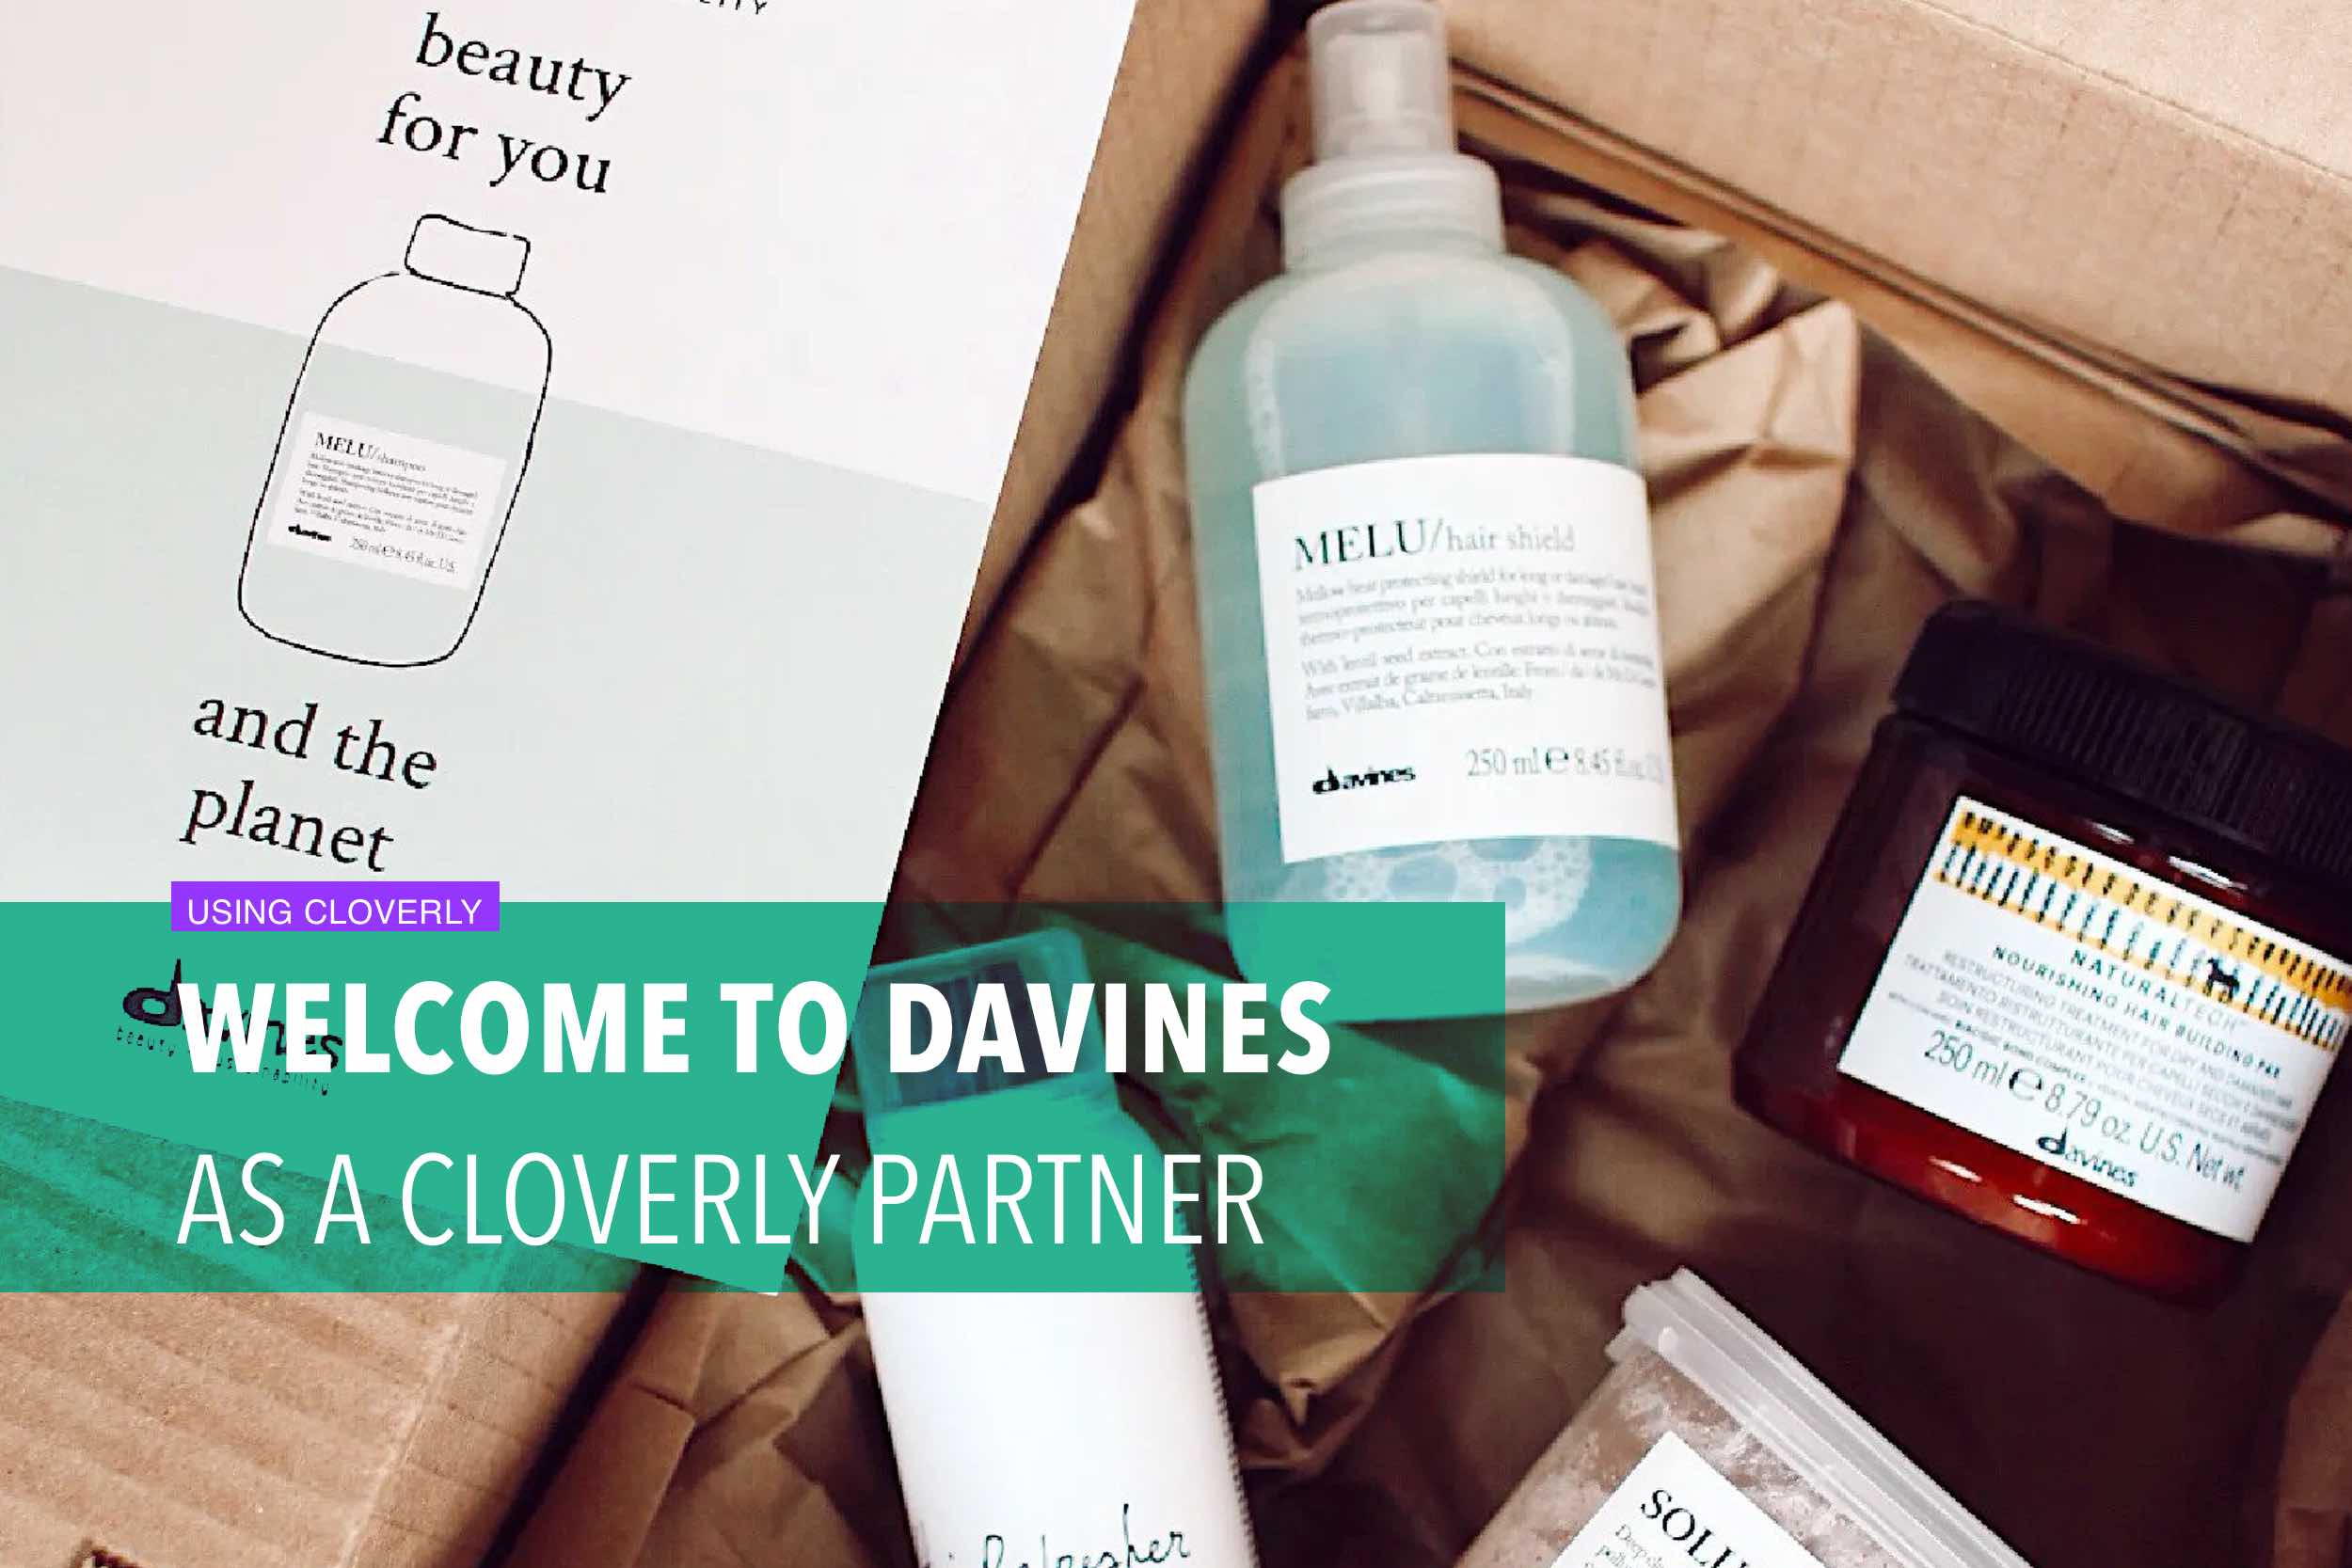 Welcome to Davines as a Cloverly partner